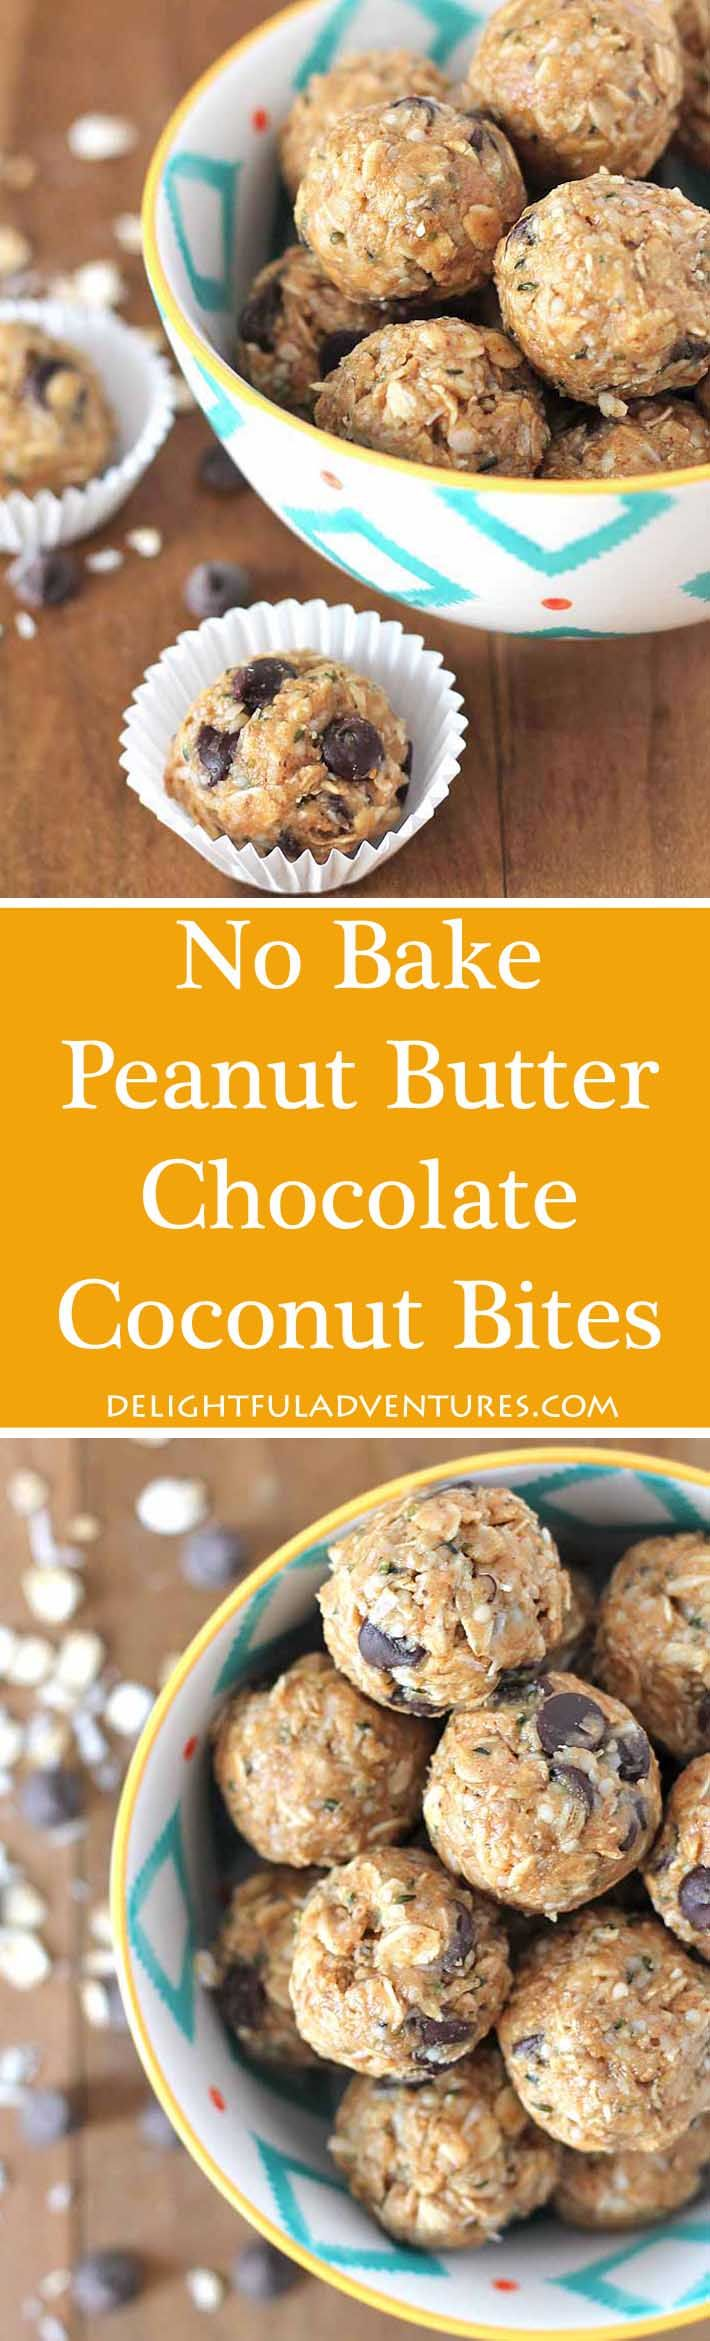 Craving something sweet but healthy? Then grab one of these easy No Bake Peanut Butter Chocolate Coconut Bites. They're quick to make and they're delicious! #nobake #peanutbutter #veganglutenfree #glutenfreevegan #vegansnacks #glutenfreesnacks via @delighfuladv